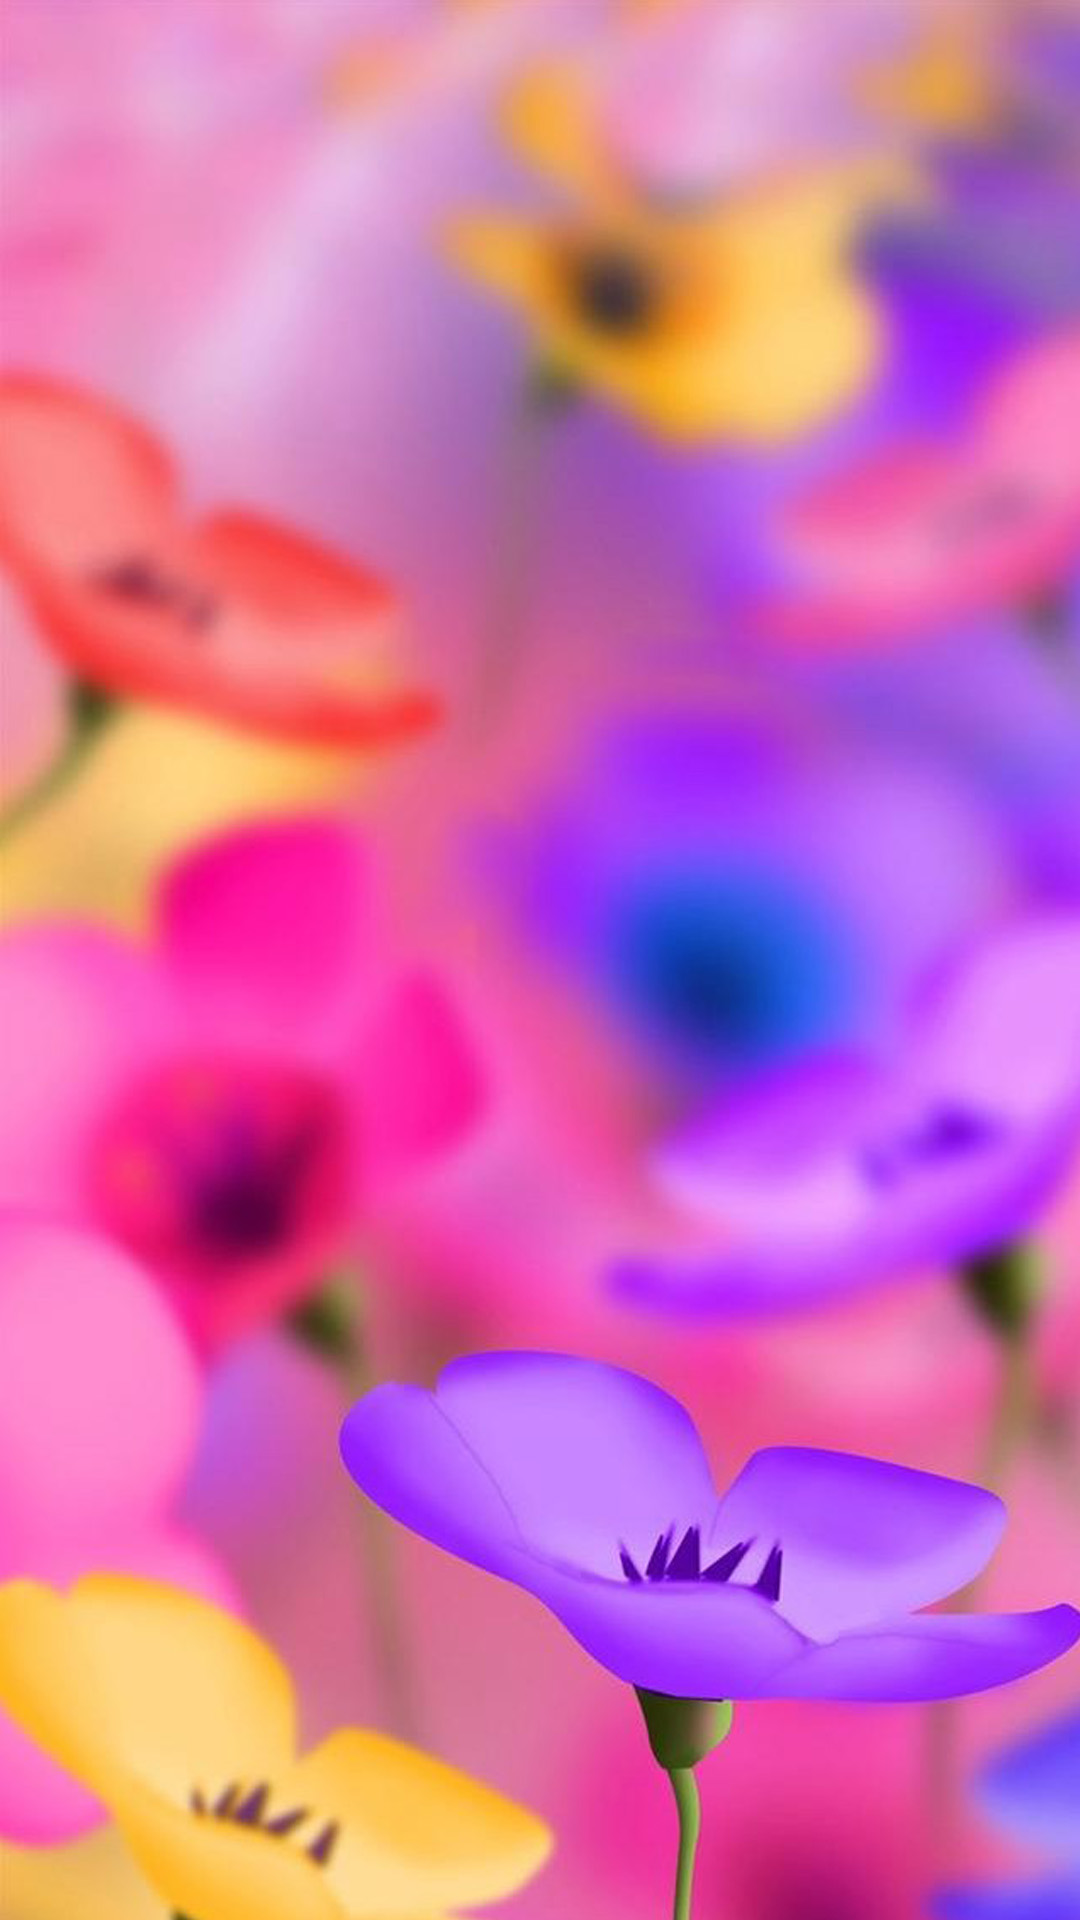 Colorful 88 Android Wallpaper Cute Wallpaper For Samsung J7 1080x1920 Download Hd Wallpaper Wallpapertip